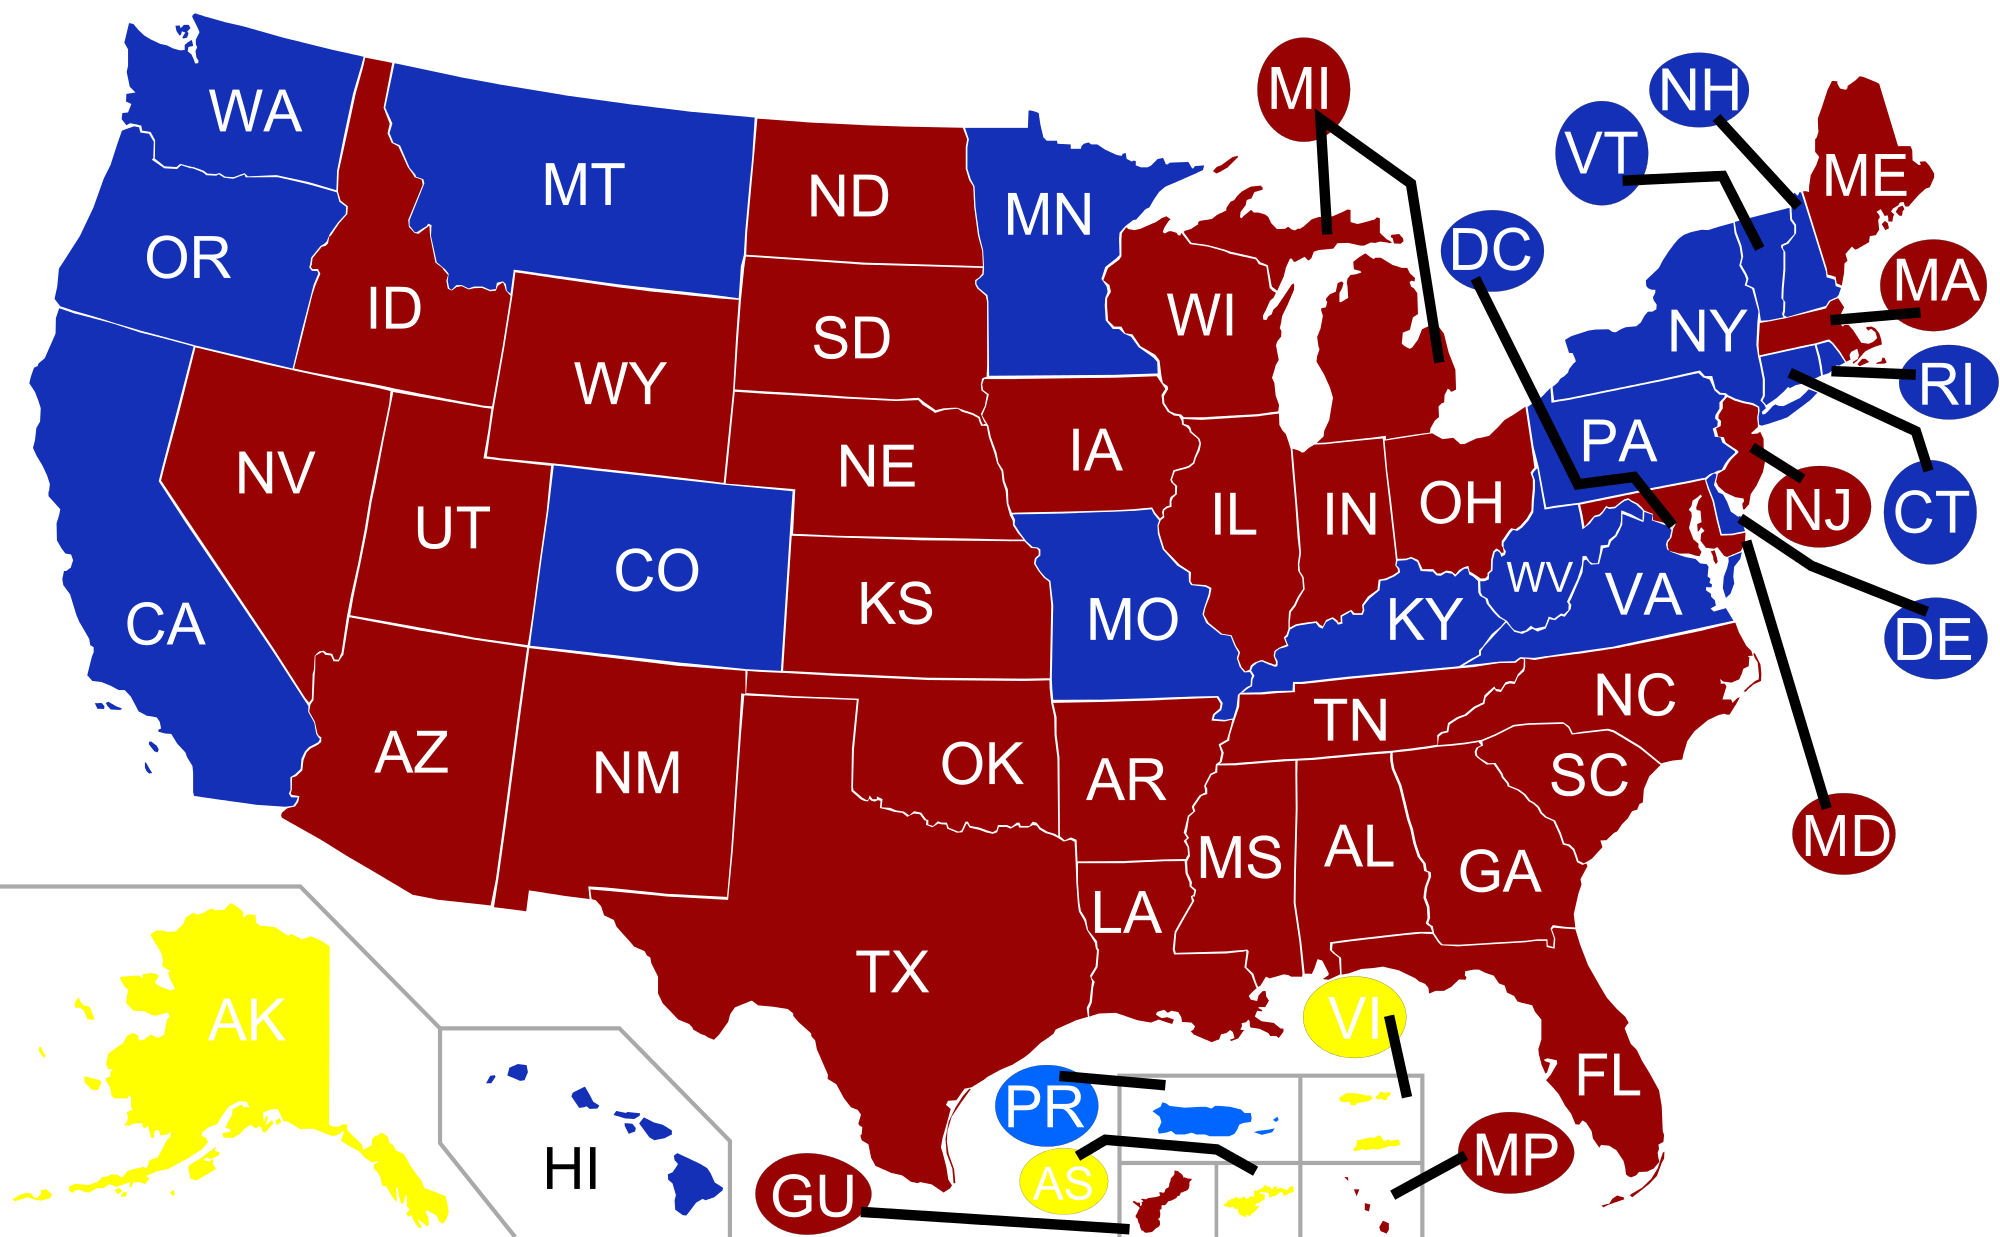 state governor party affiliation Google Search